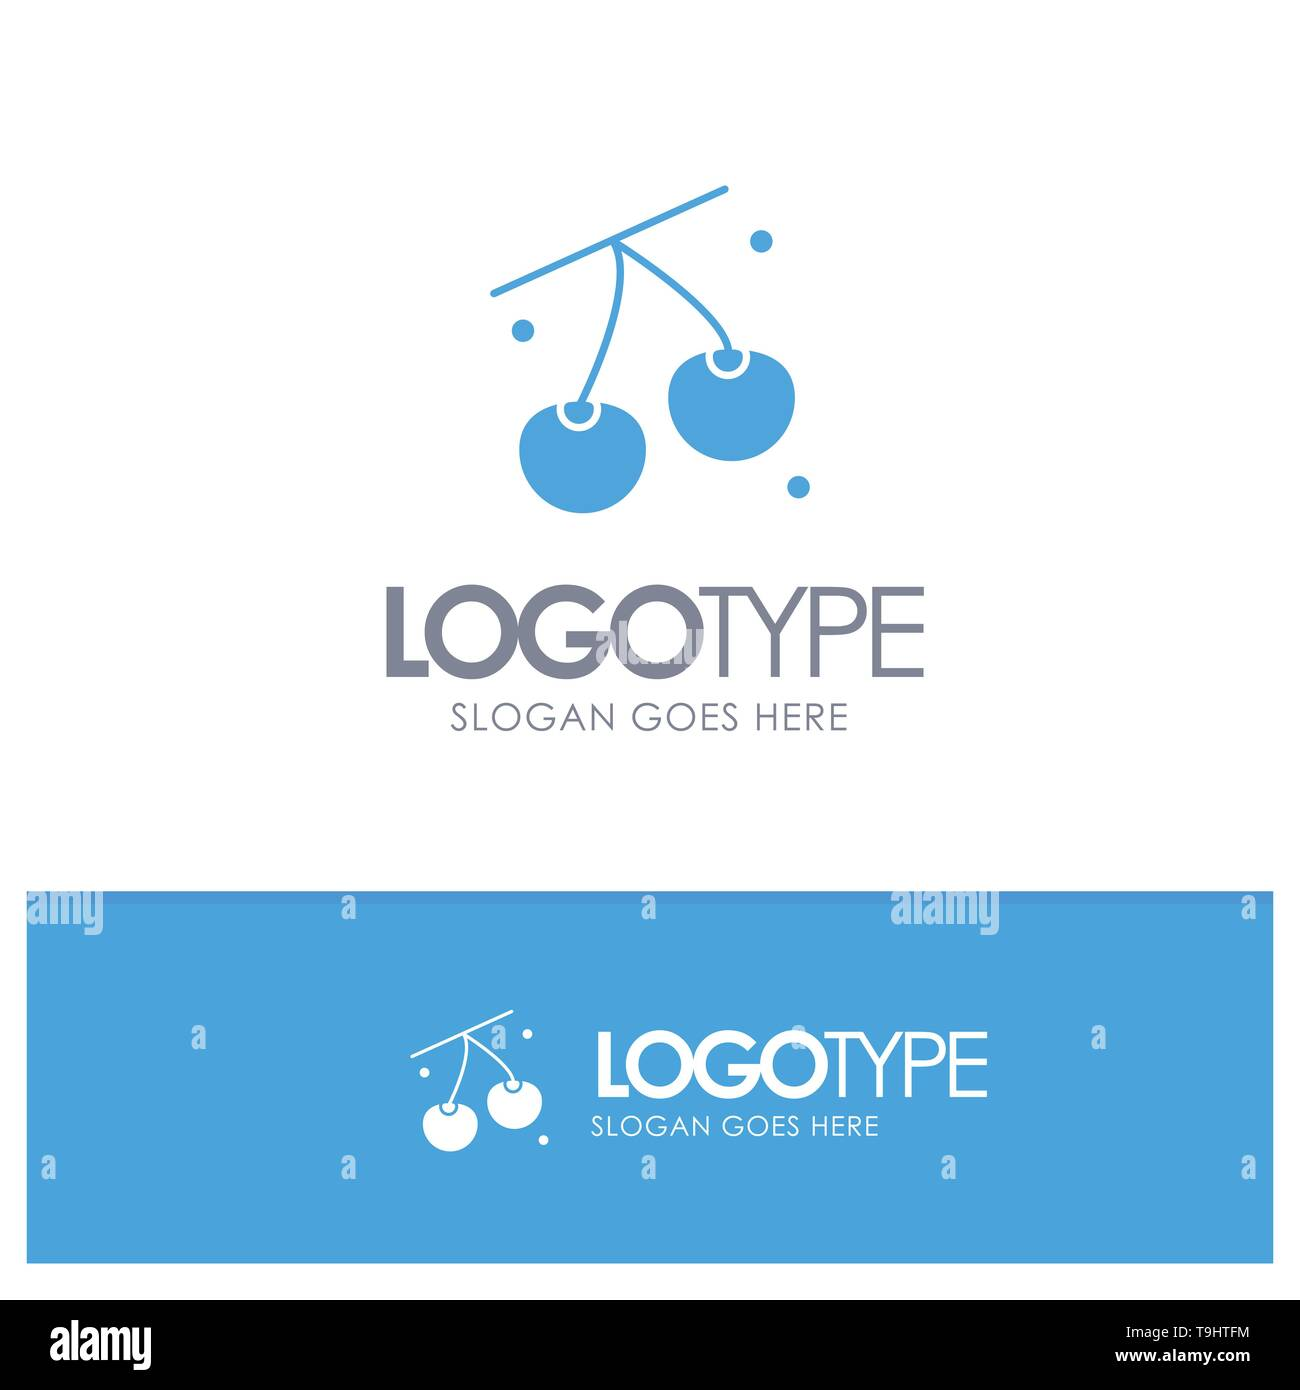 Cherry, Fruit, Healthy, Easter Blue Solid Logo with place for tagline - Stock Image